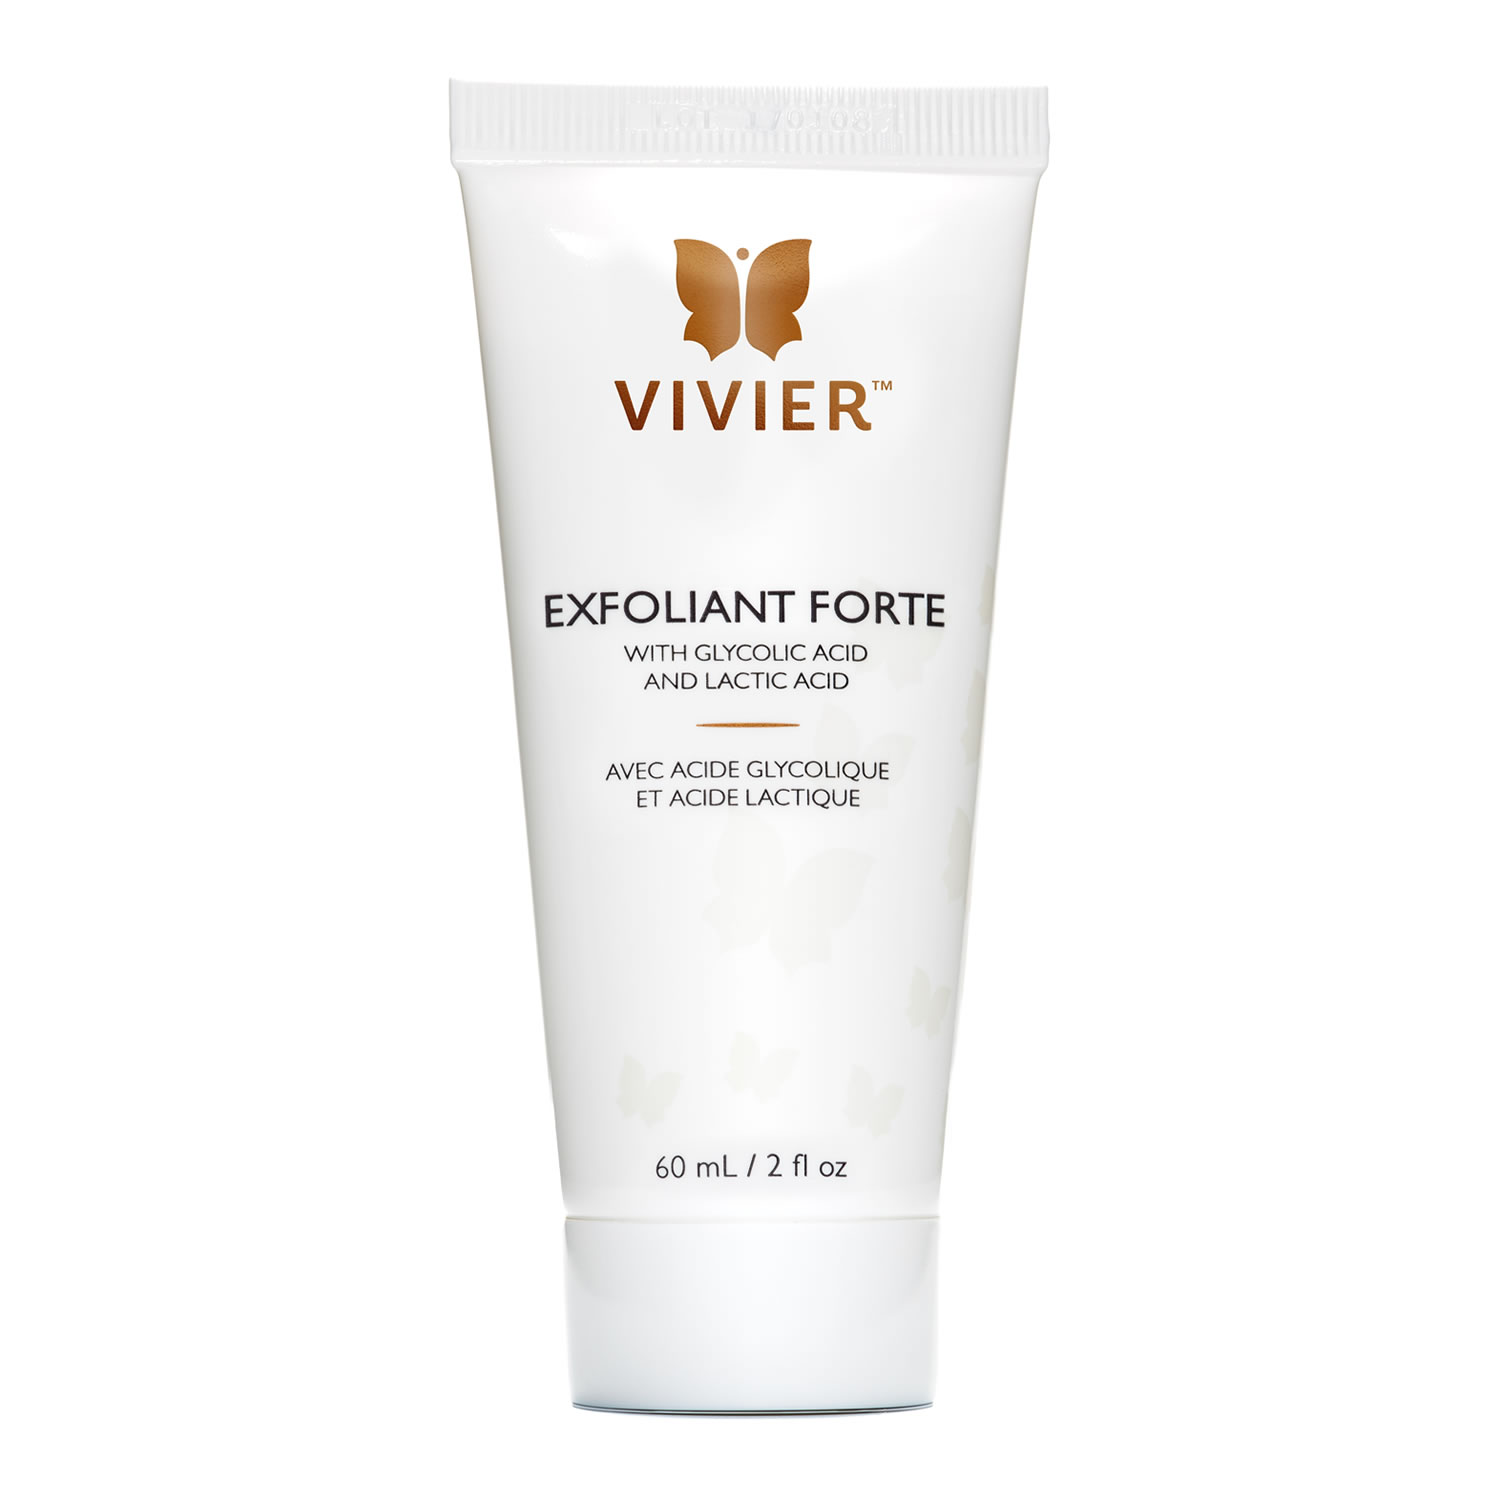 Vivier_Exfoliant_Forte_60_ml__20_fl_oz